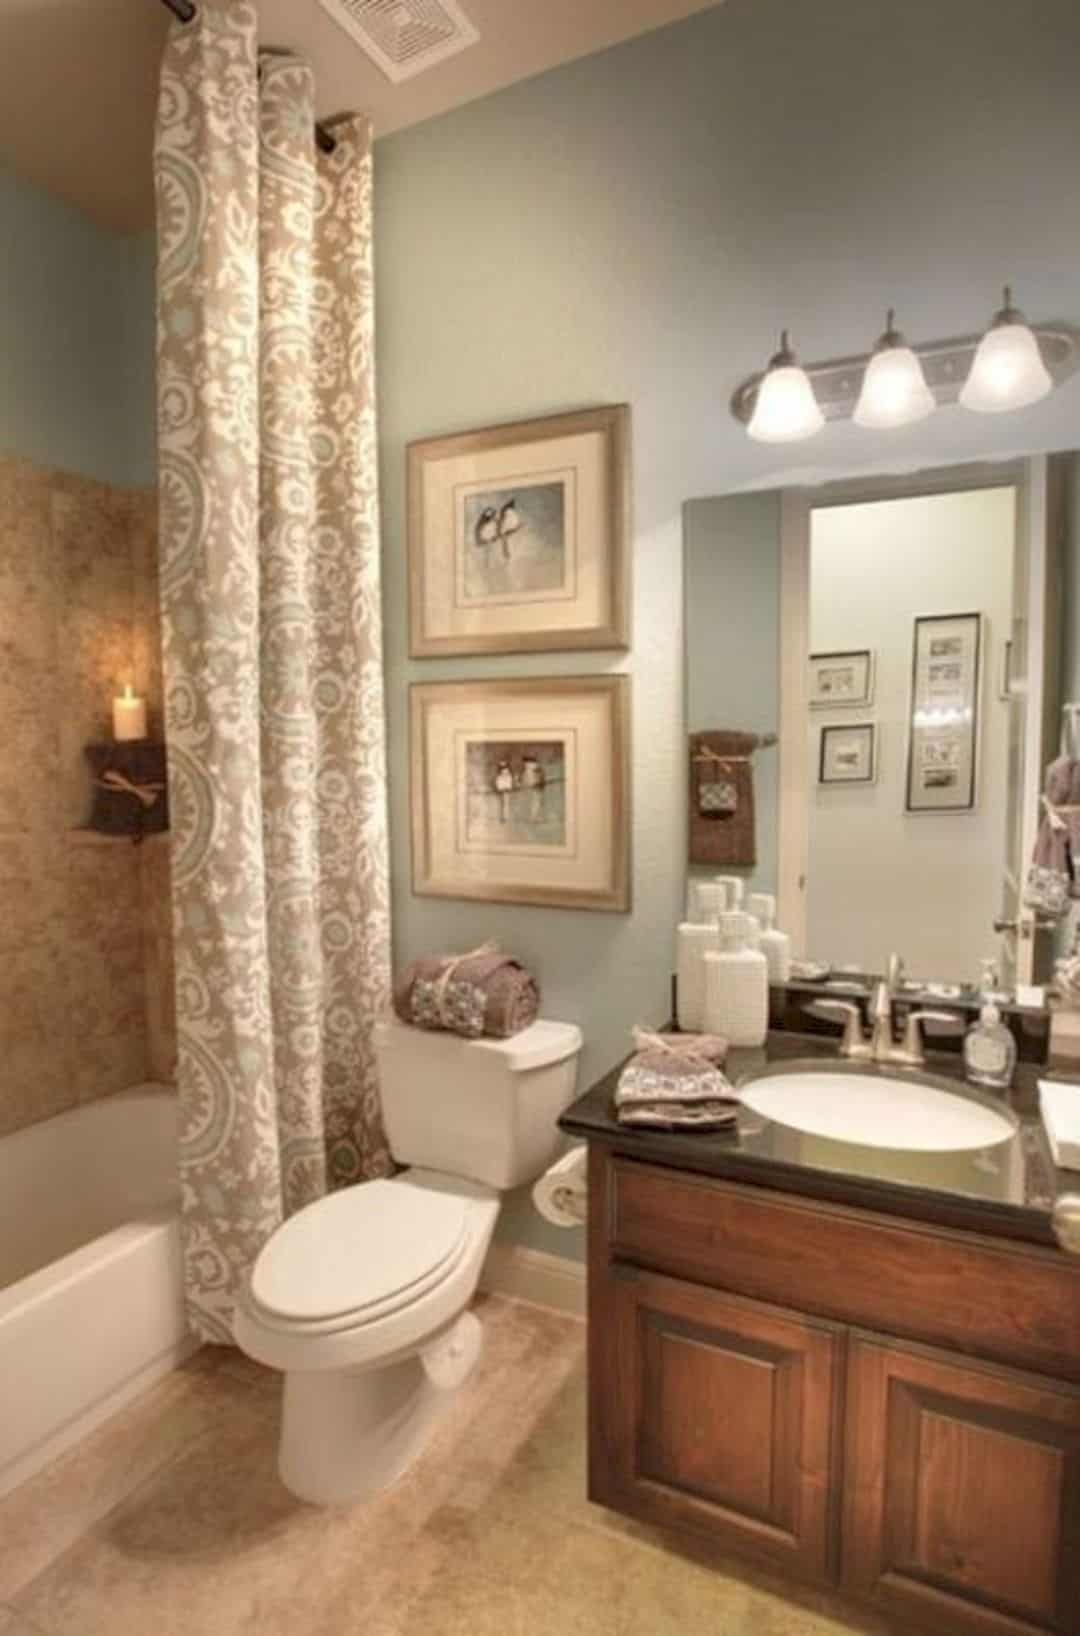 17 Awesome Small Bathroom Decorating Ideas Scandinavian Bathroom Brown Bathroom Decor Brown Bathroom